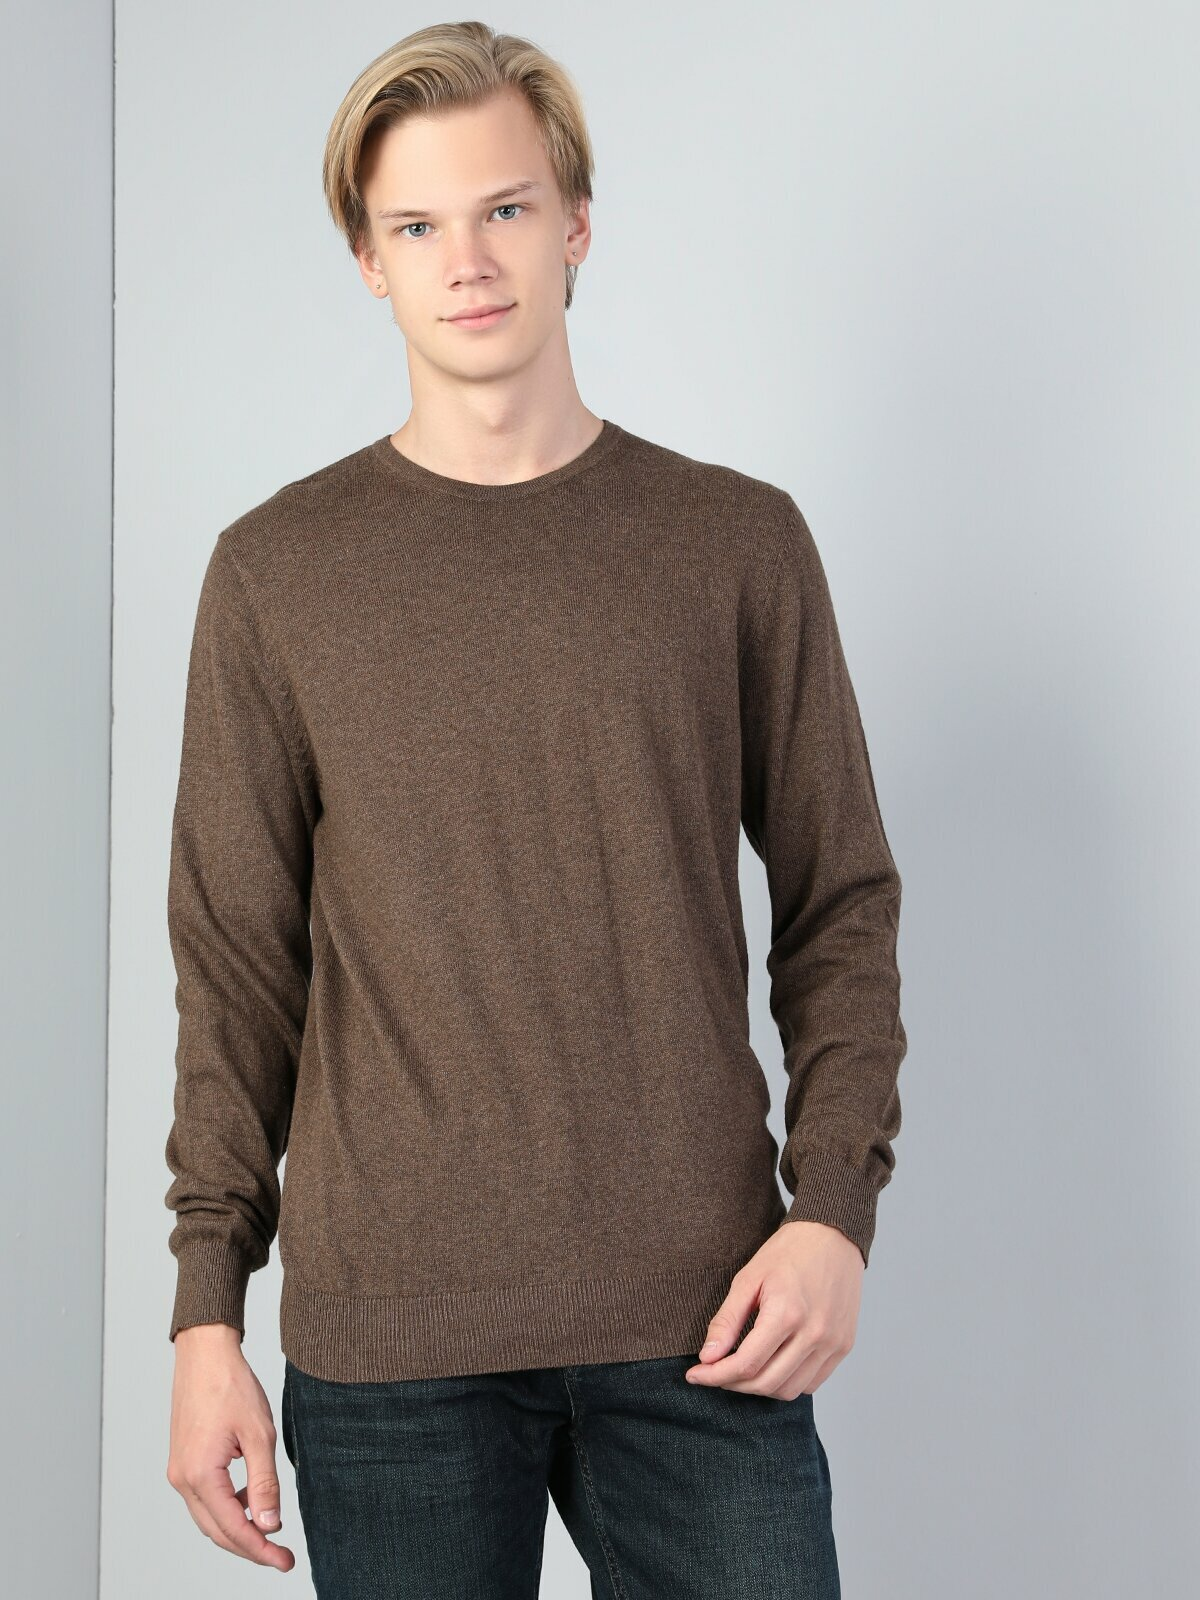 Colins Men Regular Fit Brown Sweaters Men's sweater fashion sweater outerwear,CL1023186